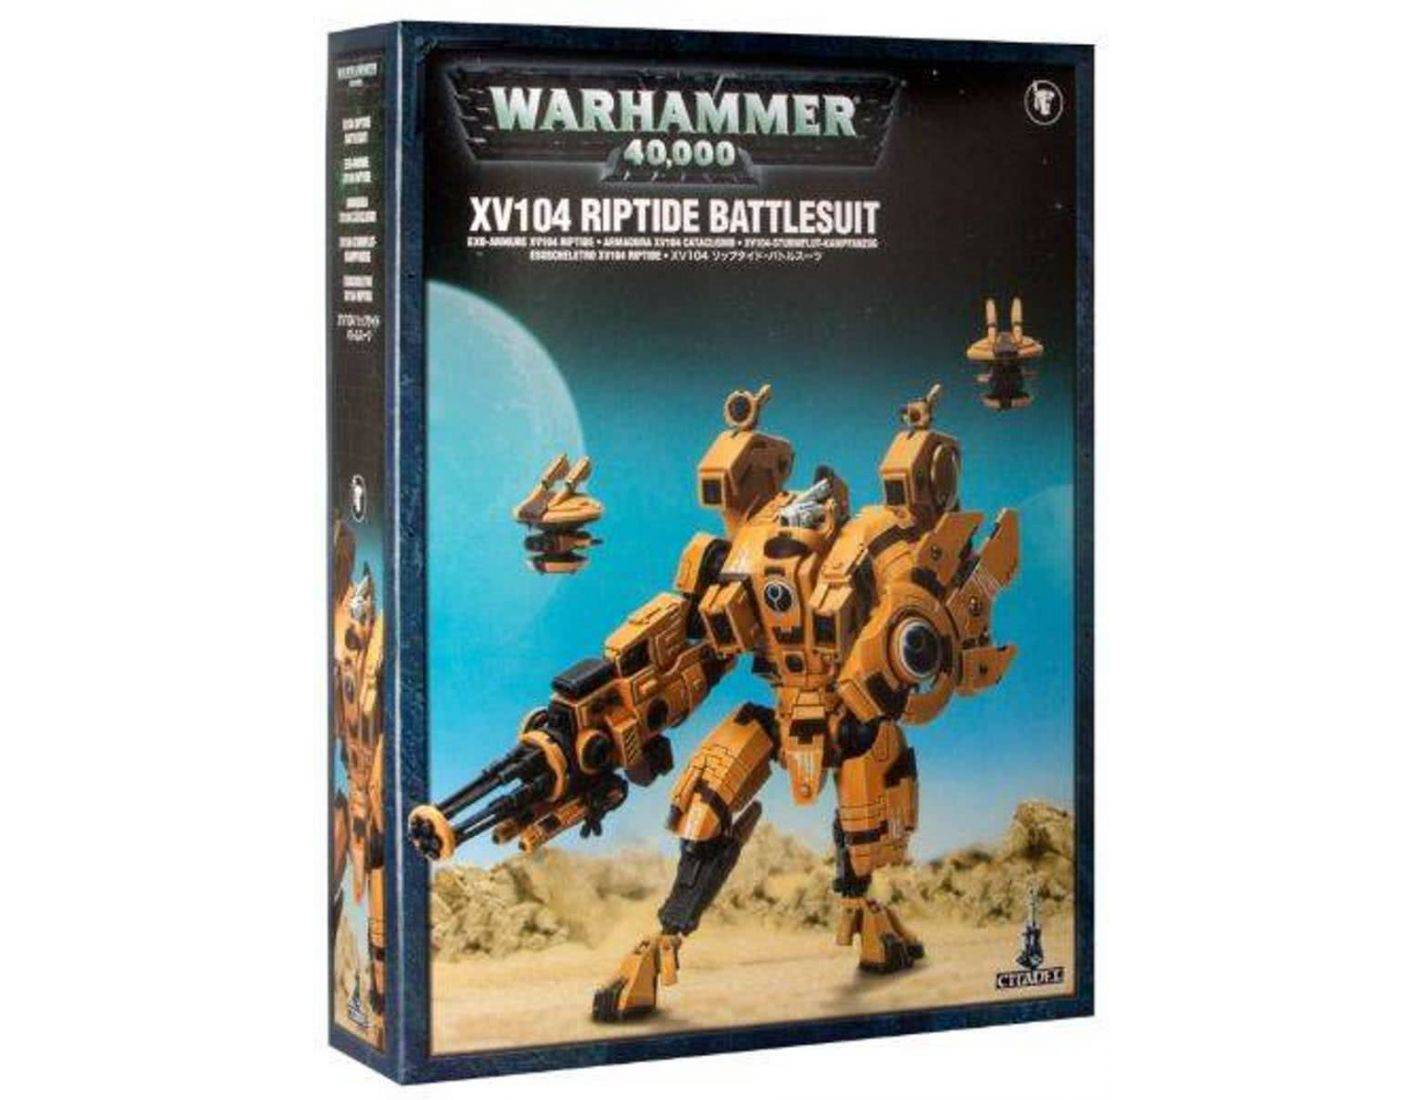 Games Workshop Warhammer 56-13 TAU EMPIRE XV104 RIPTIDE BUTTLESUIT Citadel